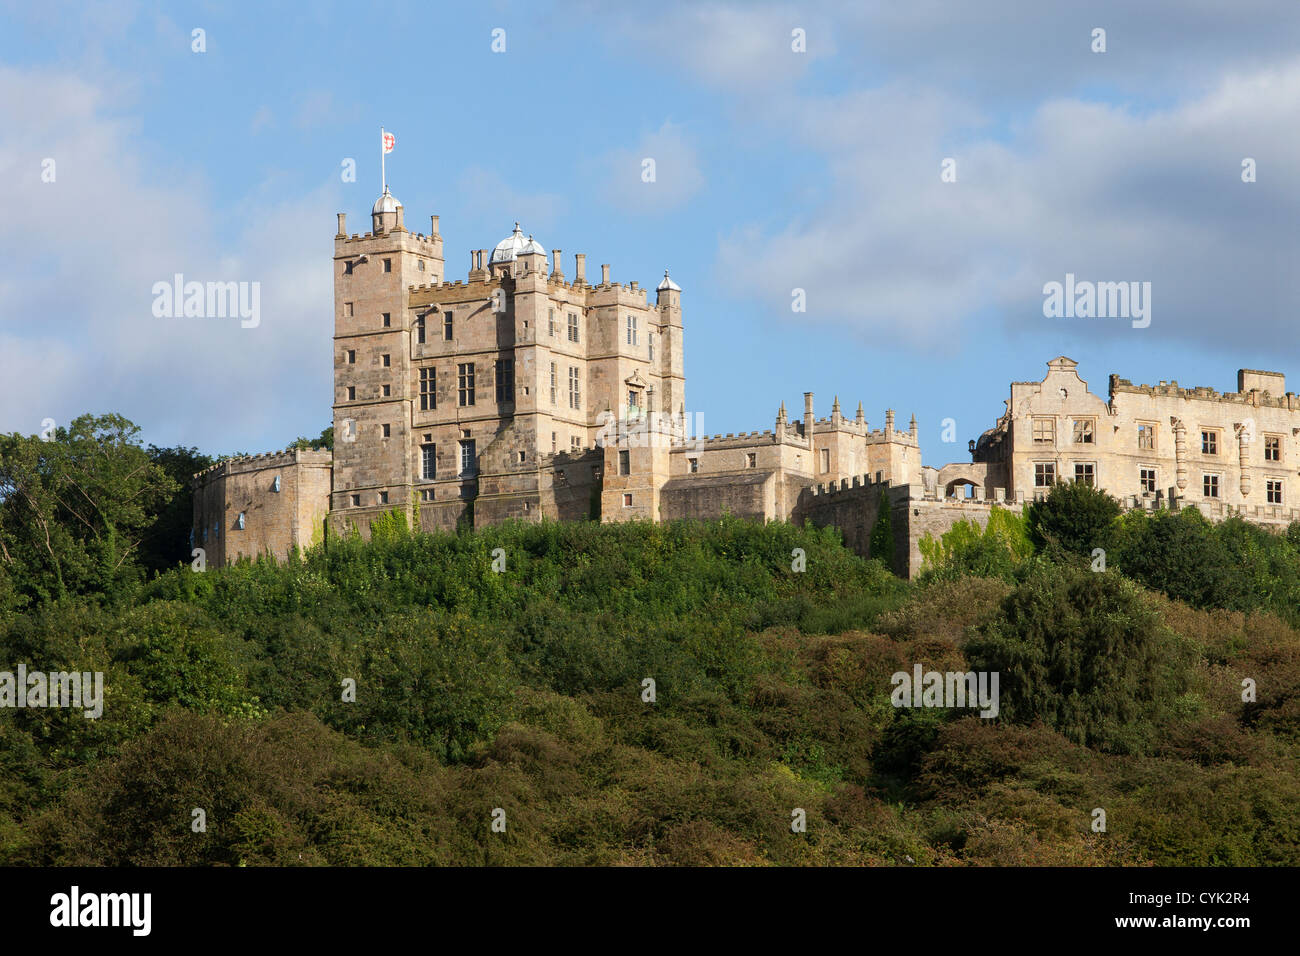 Bolsover Castle in Derbyshire founded by the Peverel family in the 12th century - Stock Image